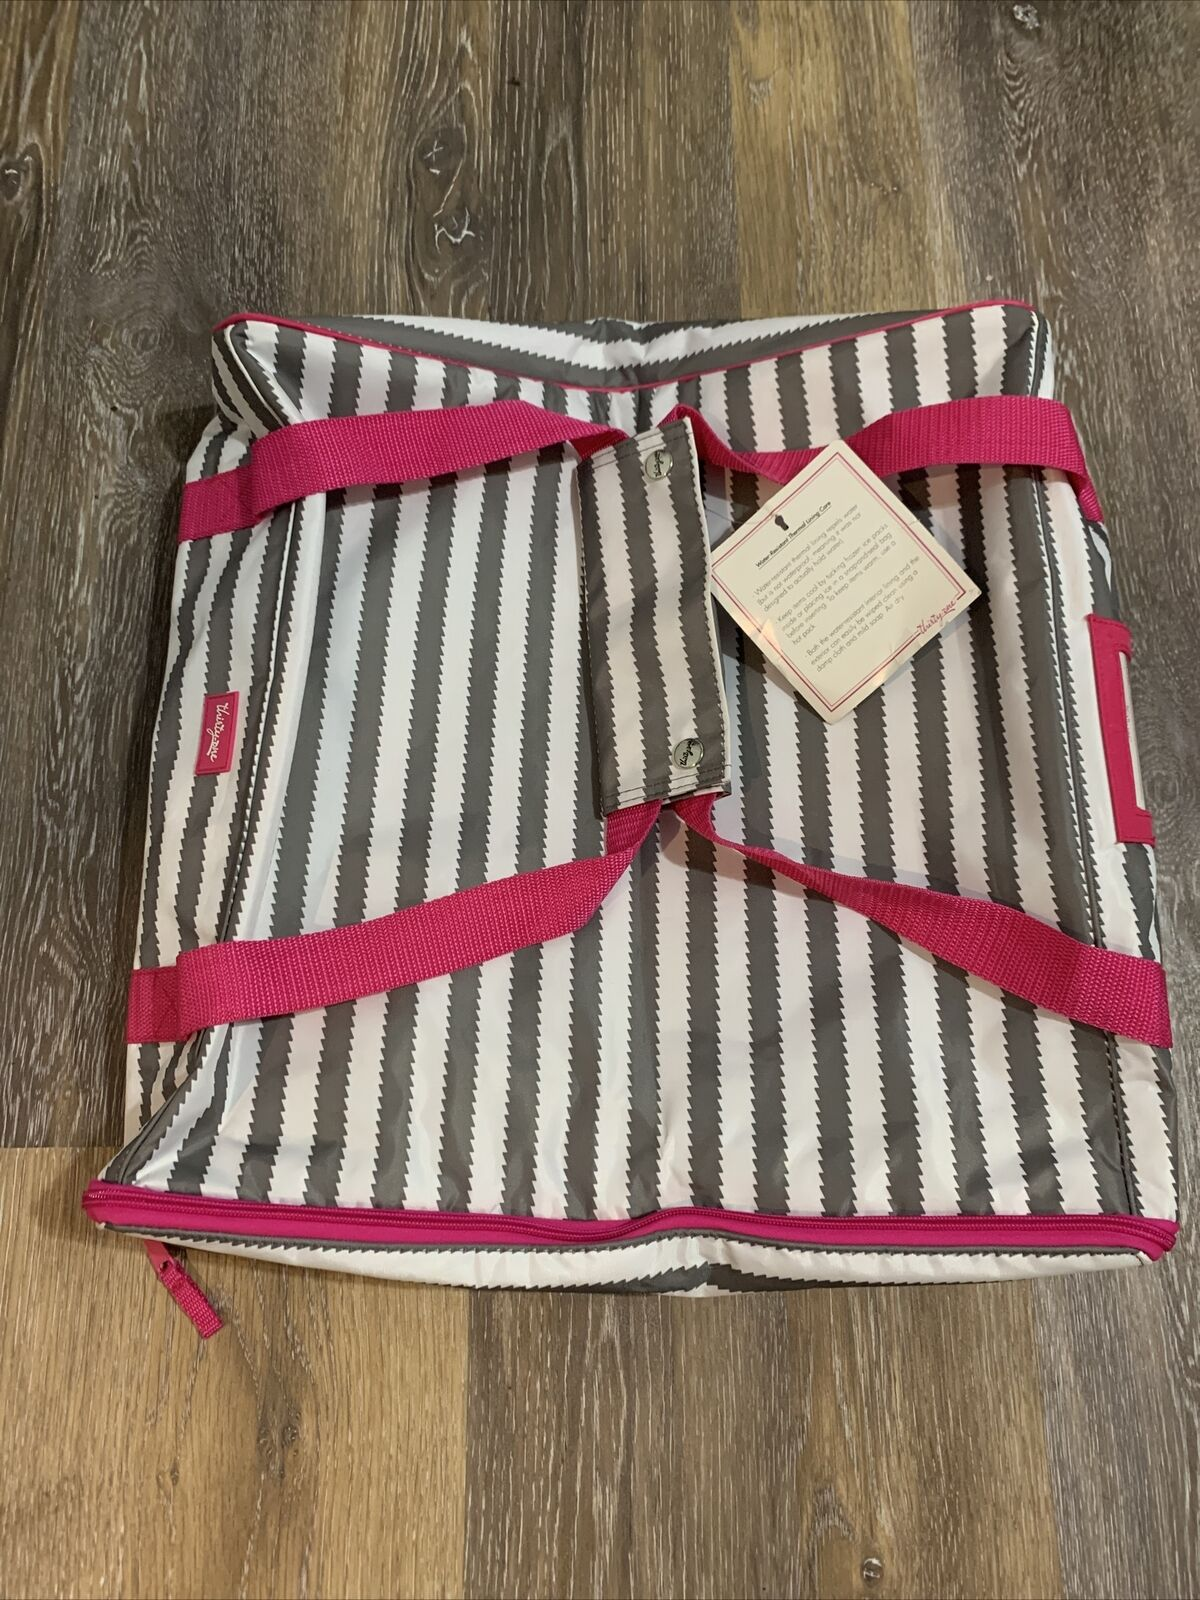 THIRTY-ONE Pack A Party Thermal Tote for Casseroles Grey Wave Pink-NEW